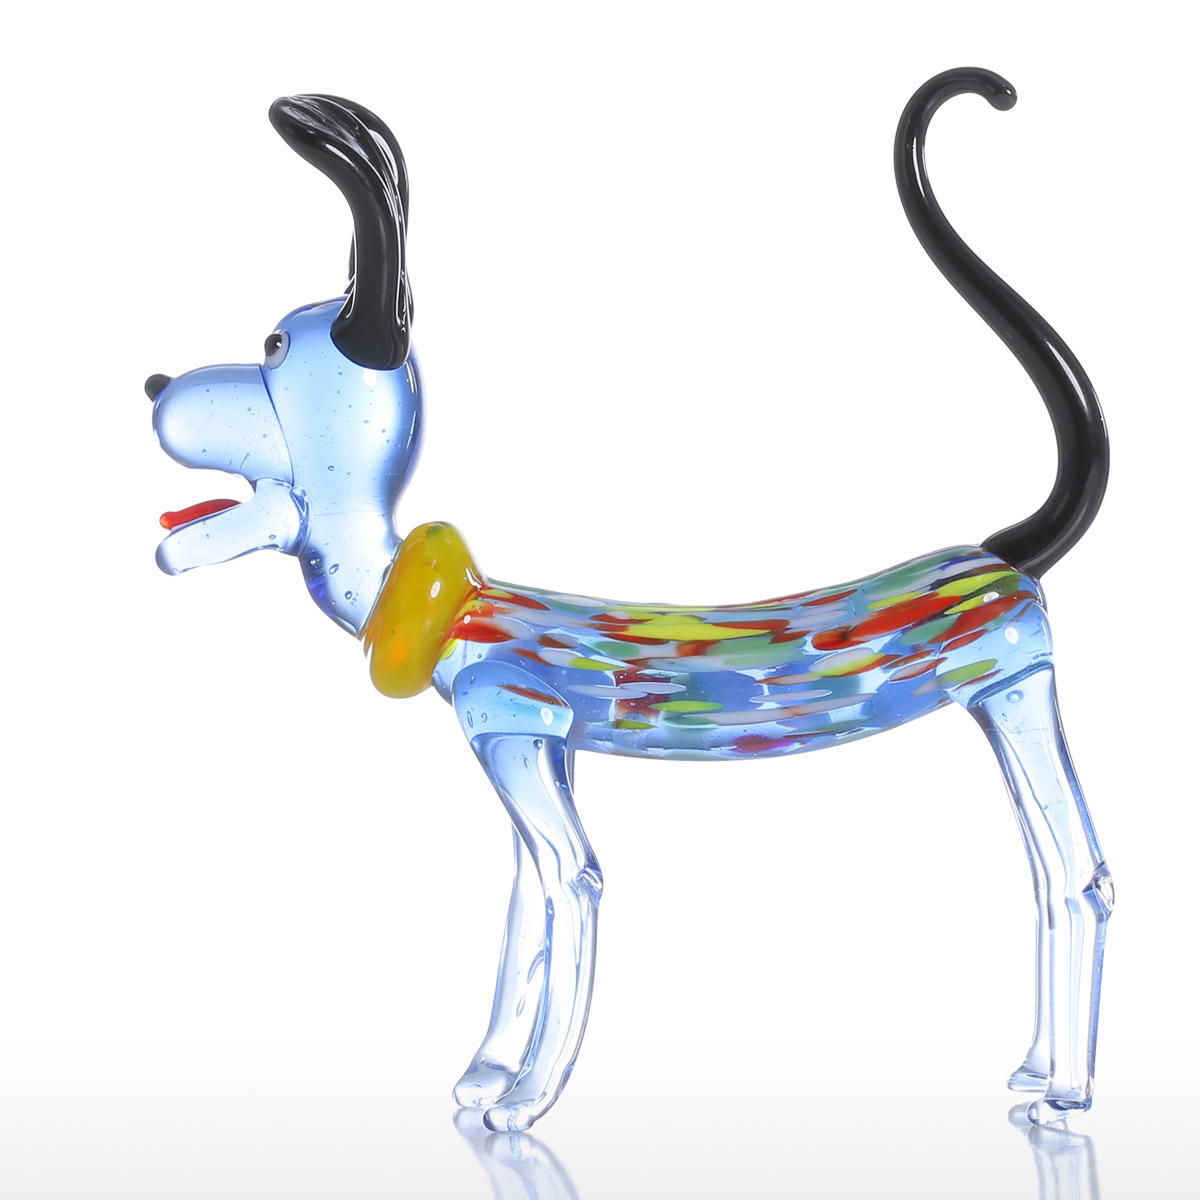 Glass animal ornaments - Tooarts Long Ear Dog Gift Glass Ornament Animal Figurine Handblown Home Decor Multicolor For Office Decoration